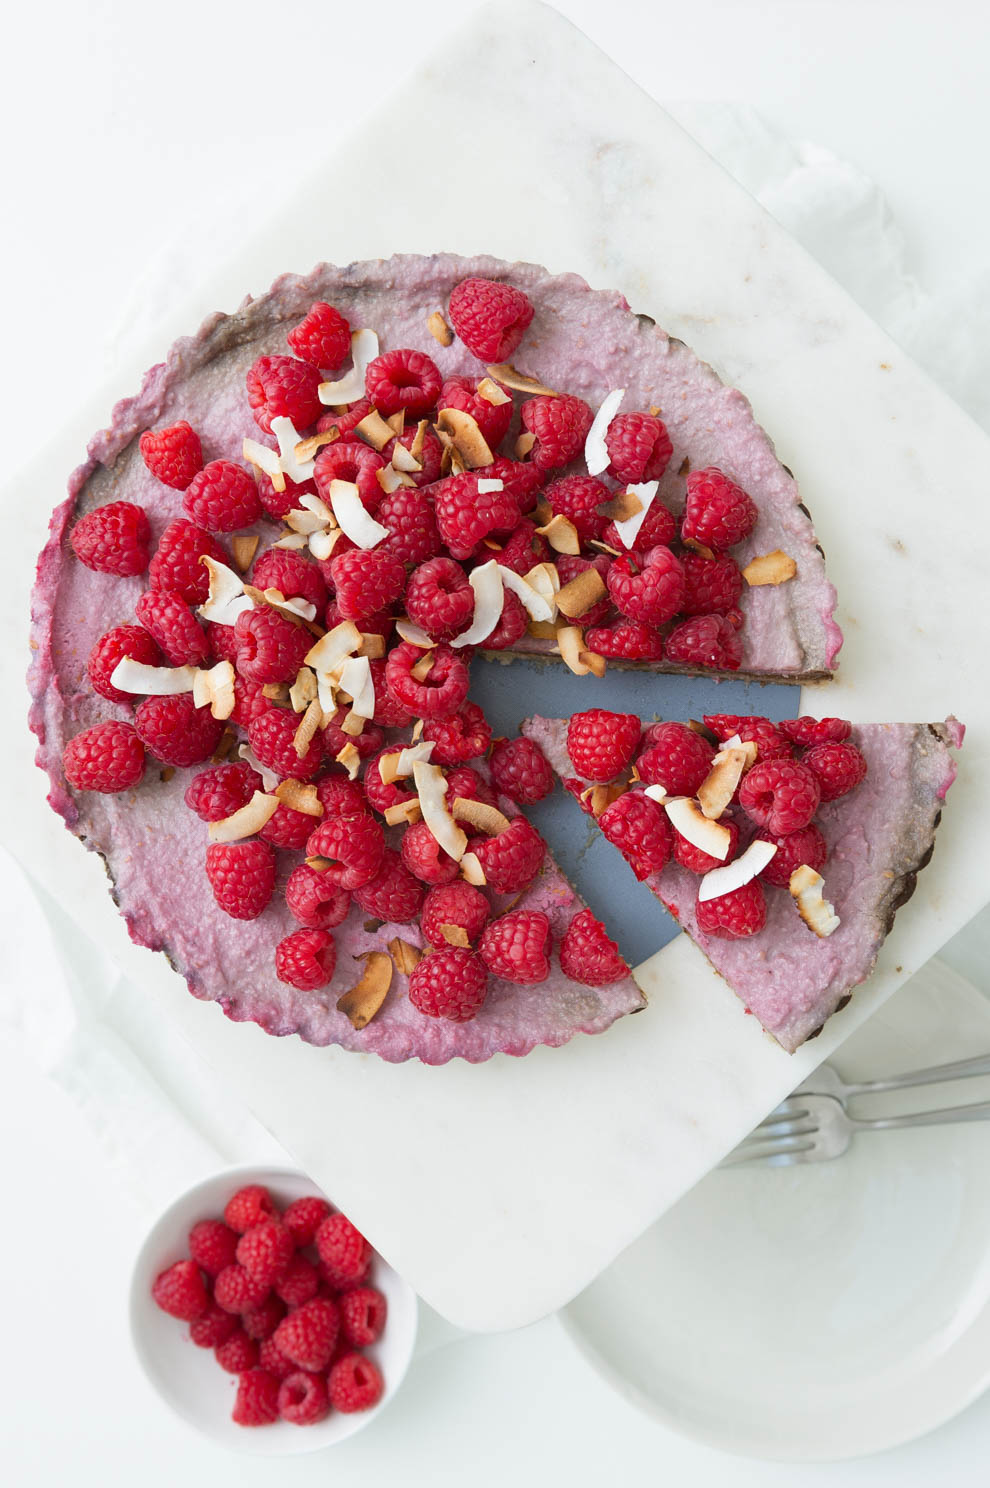 Vegan and Gluten free Raspberry Chocolate Mousse Cake recipe by Heather Cox of Eat Real Food